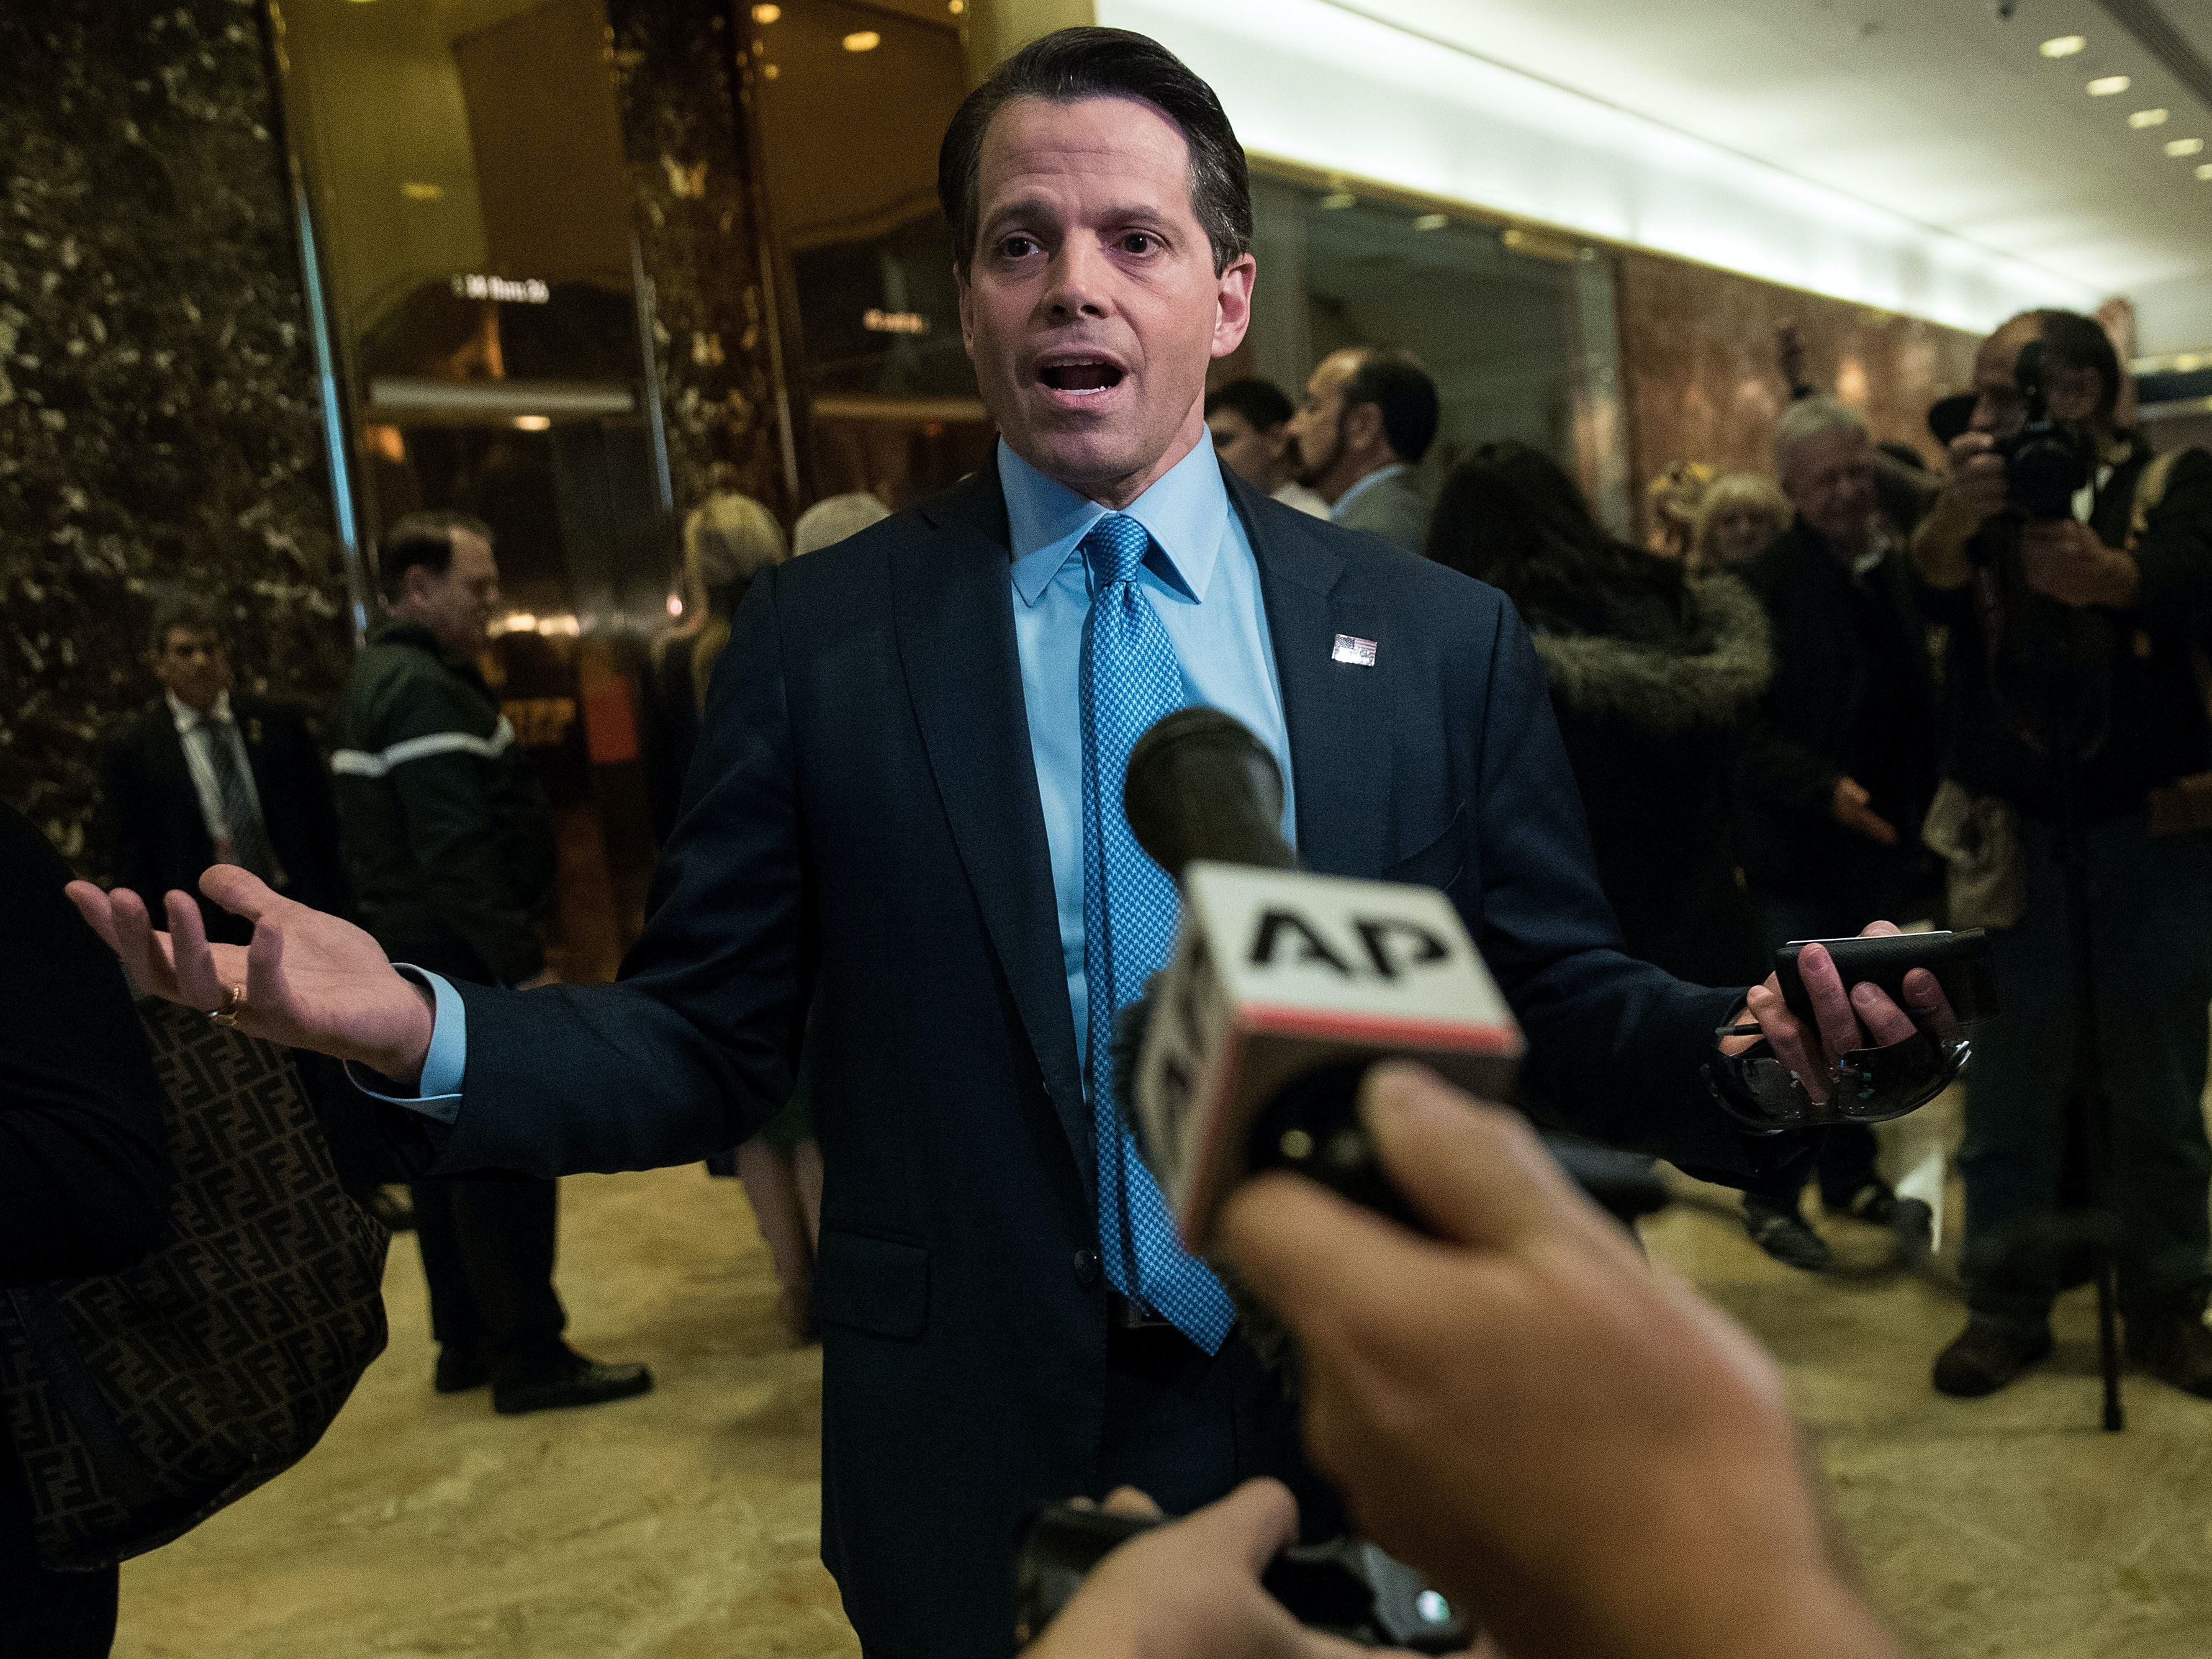 NEW YORK, NY - NOVEMBER 17: Anthony Scaramucci, a member of the transition team executive committee and founder of investment firm SkyBridge Capital, speaks to reporters at Trump Tower, November 17, 2016 in New York City.  President-elect Donald Trump and his transition team are in the process of filling cabinet and high level positions for the new administration.  (Photo by Drew Angerer/Getty Images)